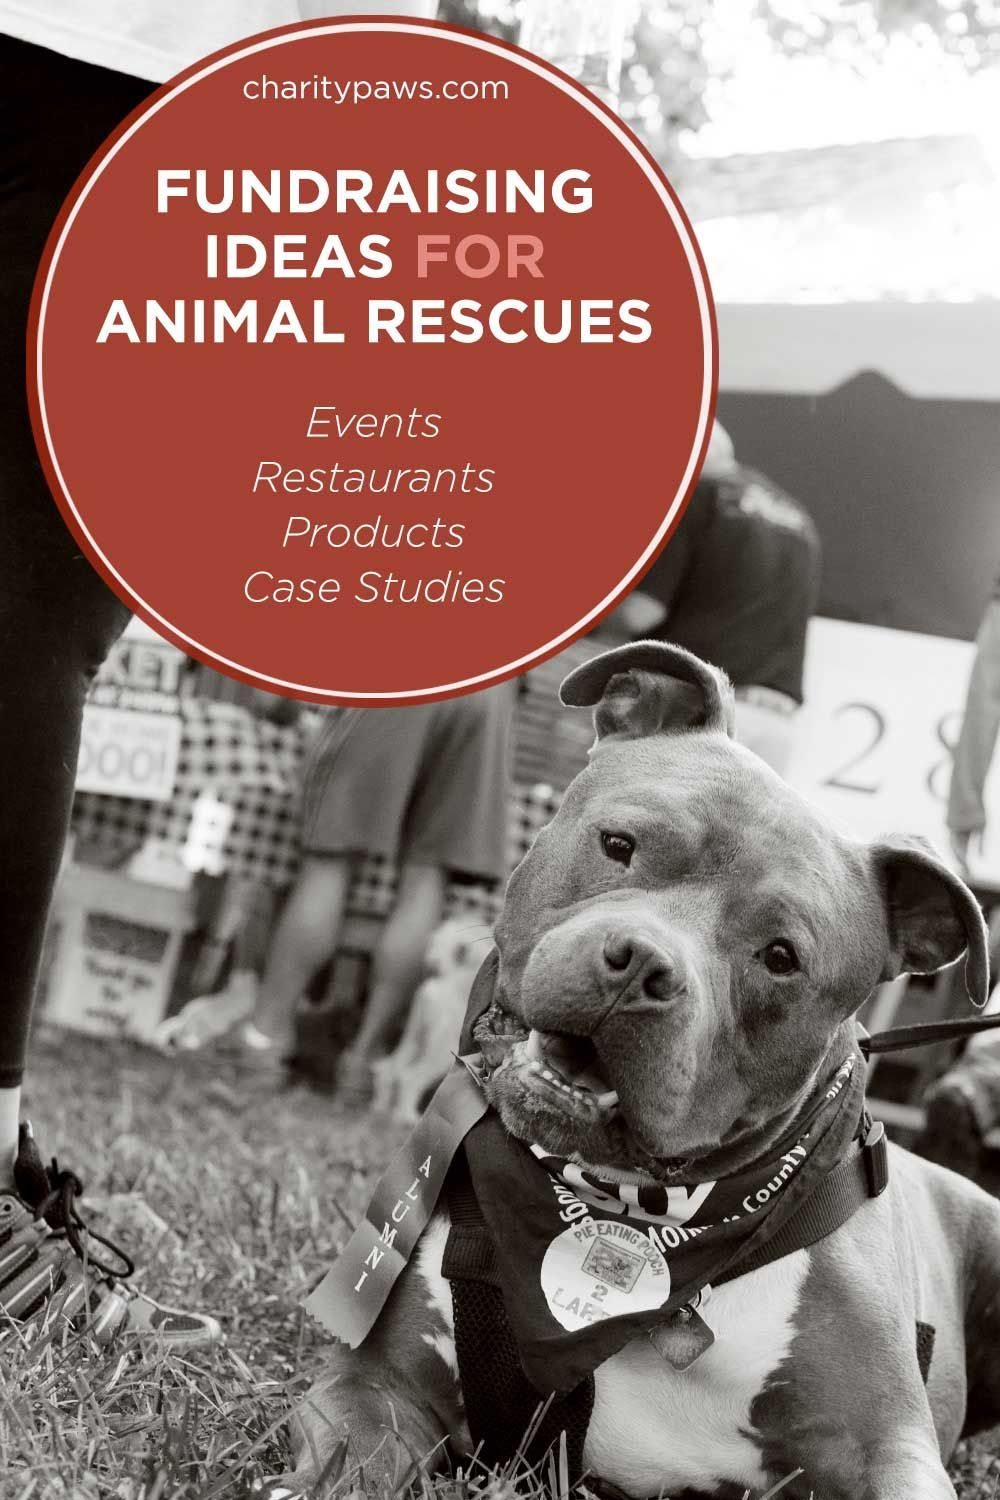 Fundraising Ideas For Animal Rescues To Raise Funds & Have Fun